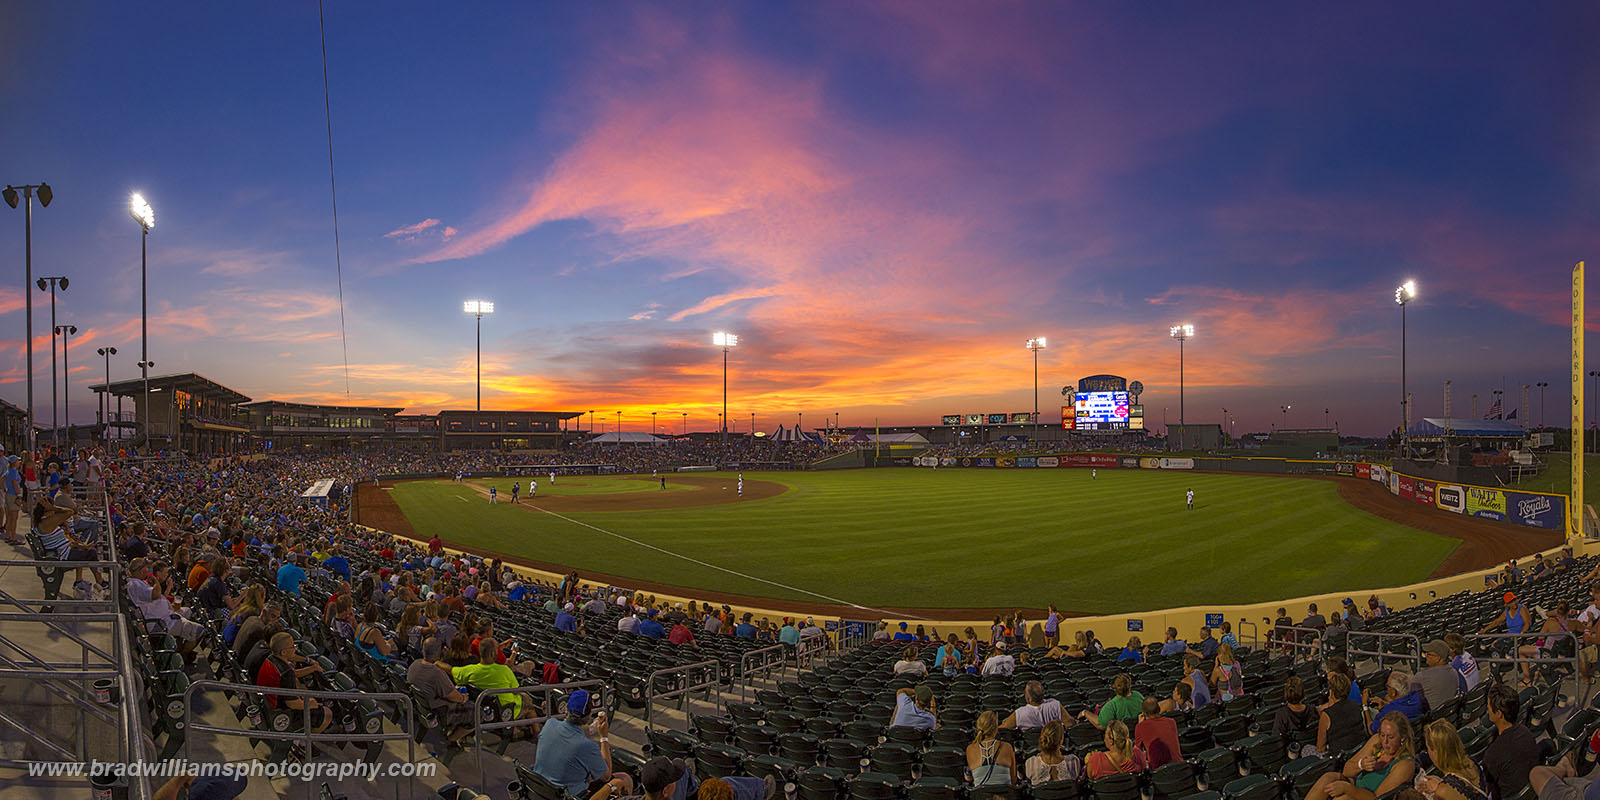 omaha storm chasers, papillion, nebraska, werner park, sarpy county, photo